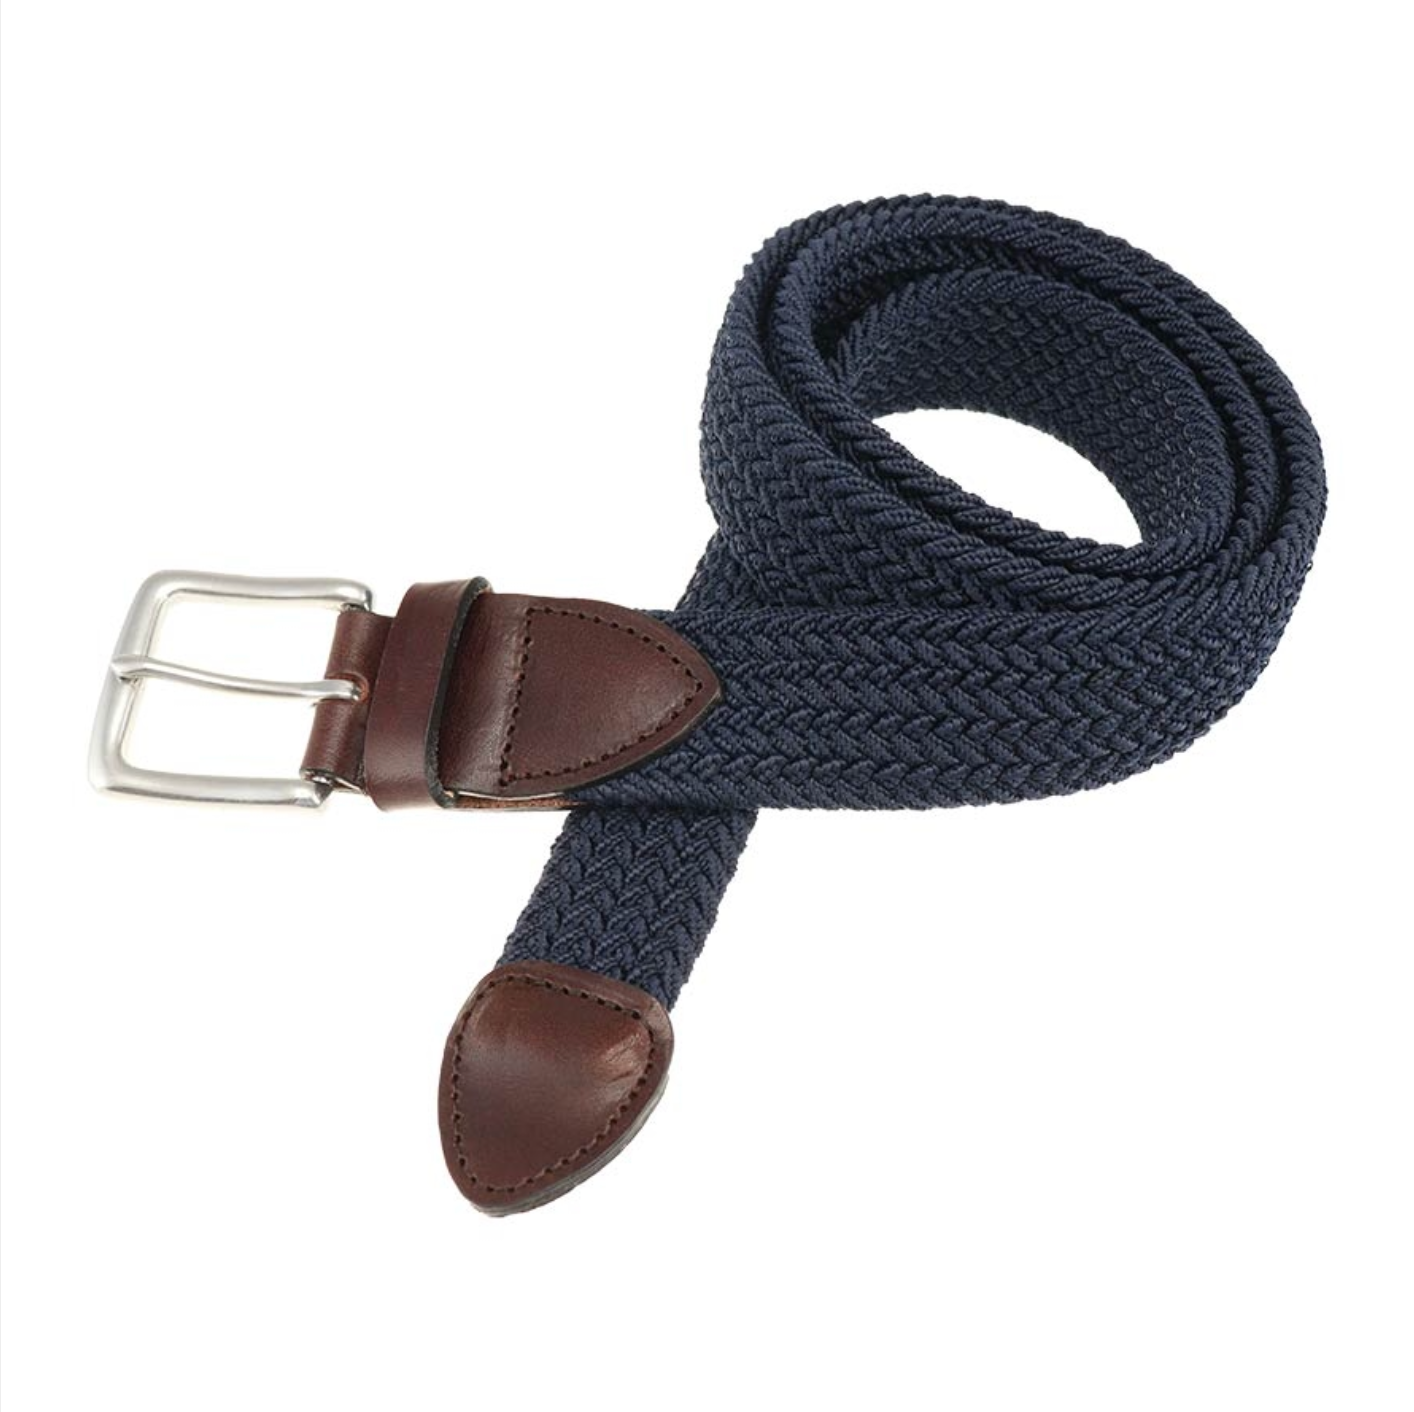 Crafted to add a rich style to any look, our Haspel x T.B. Phelps Collaboration, the Navy Braided Belt features a Briar Waxy leather tab, antique nickel finish buckle, and four color choices of braided elastic.